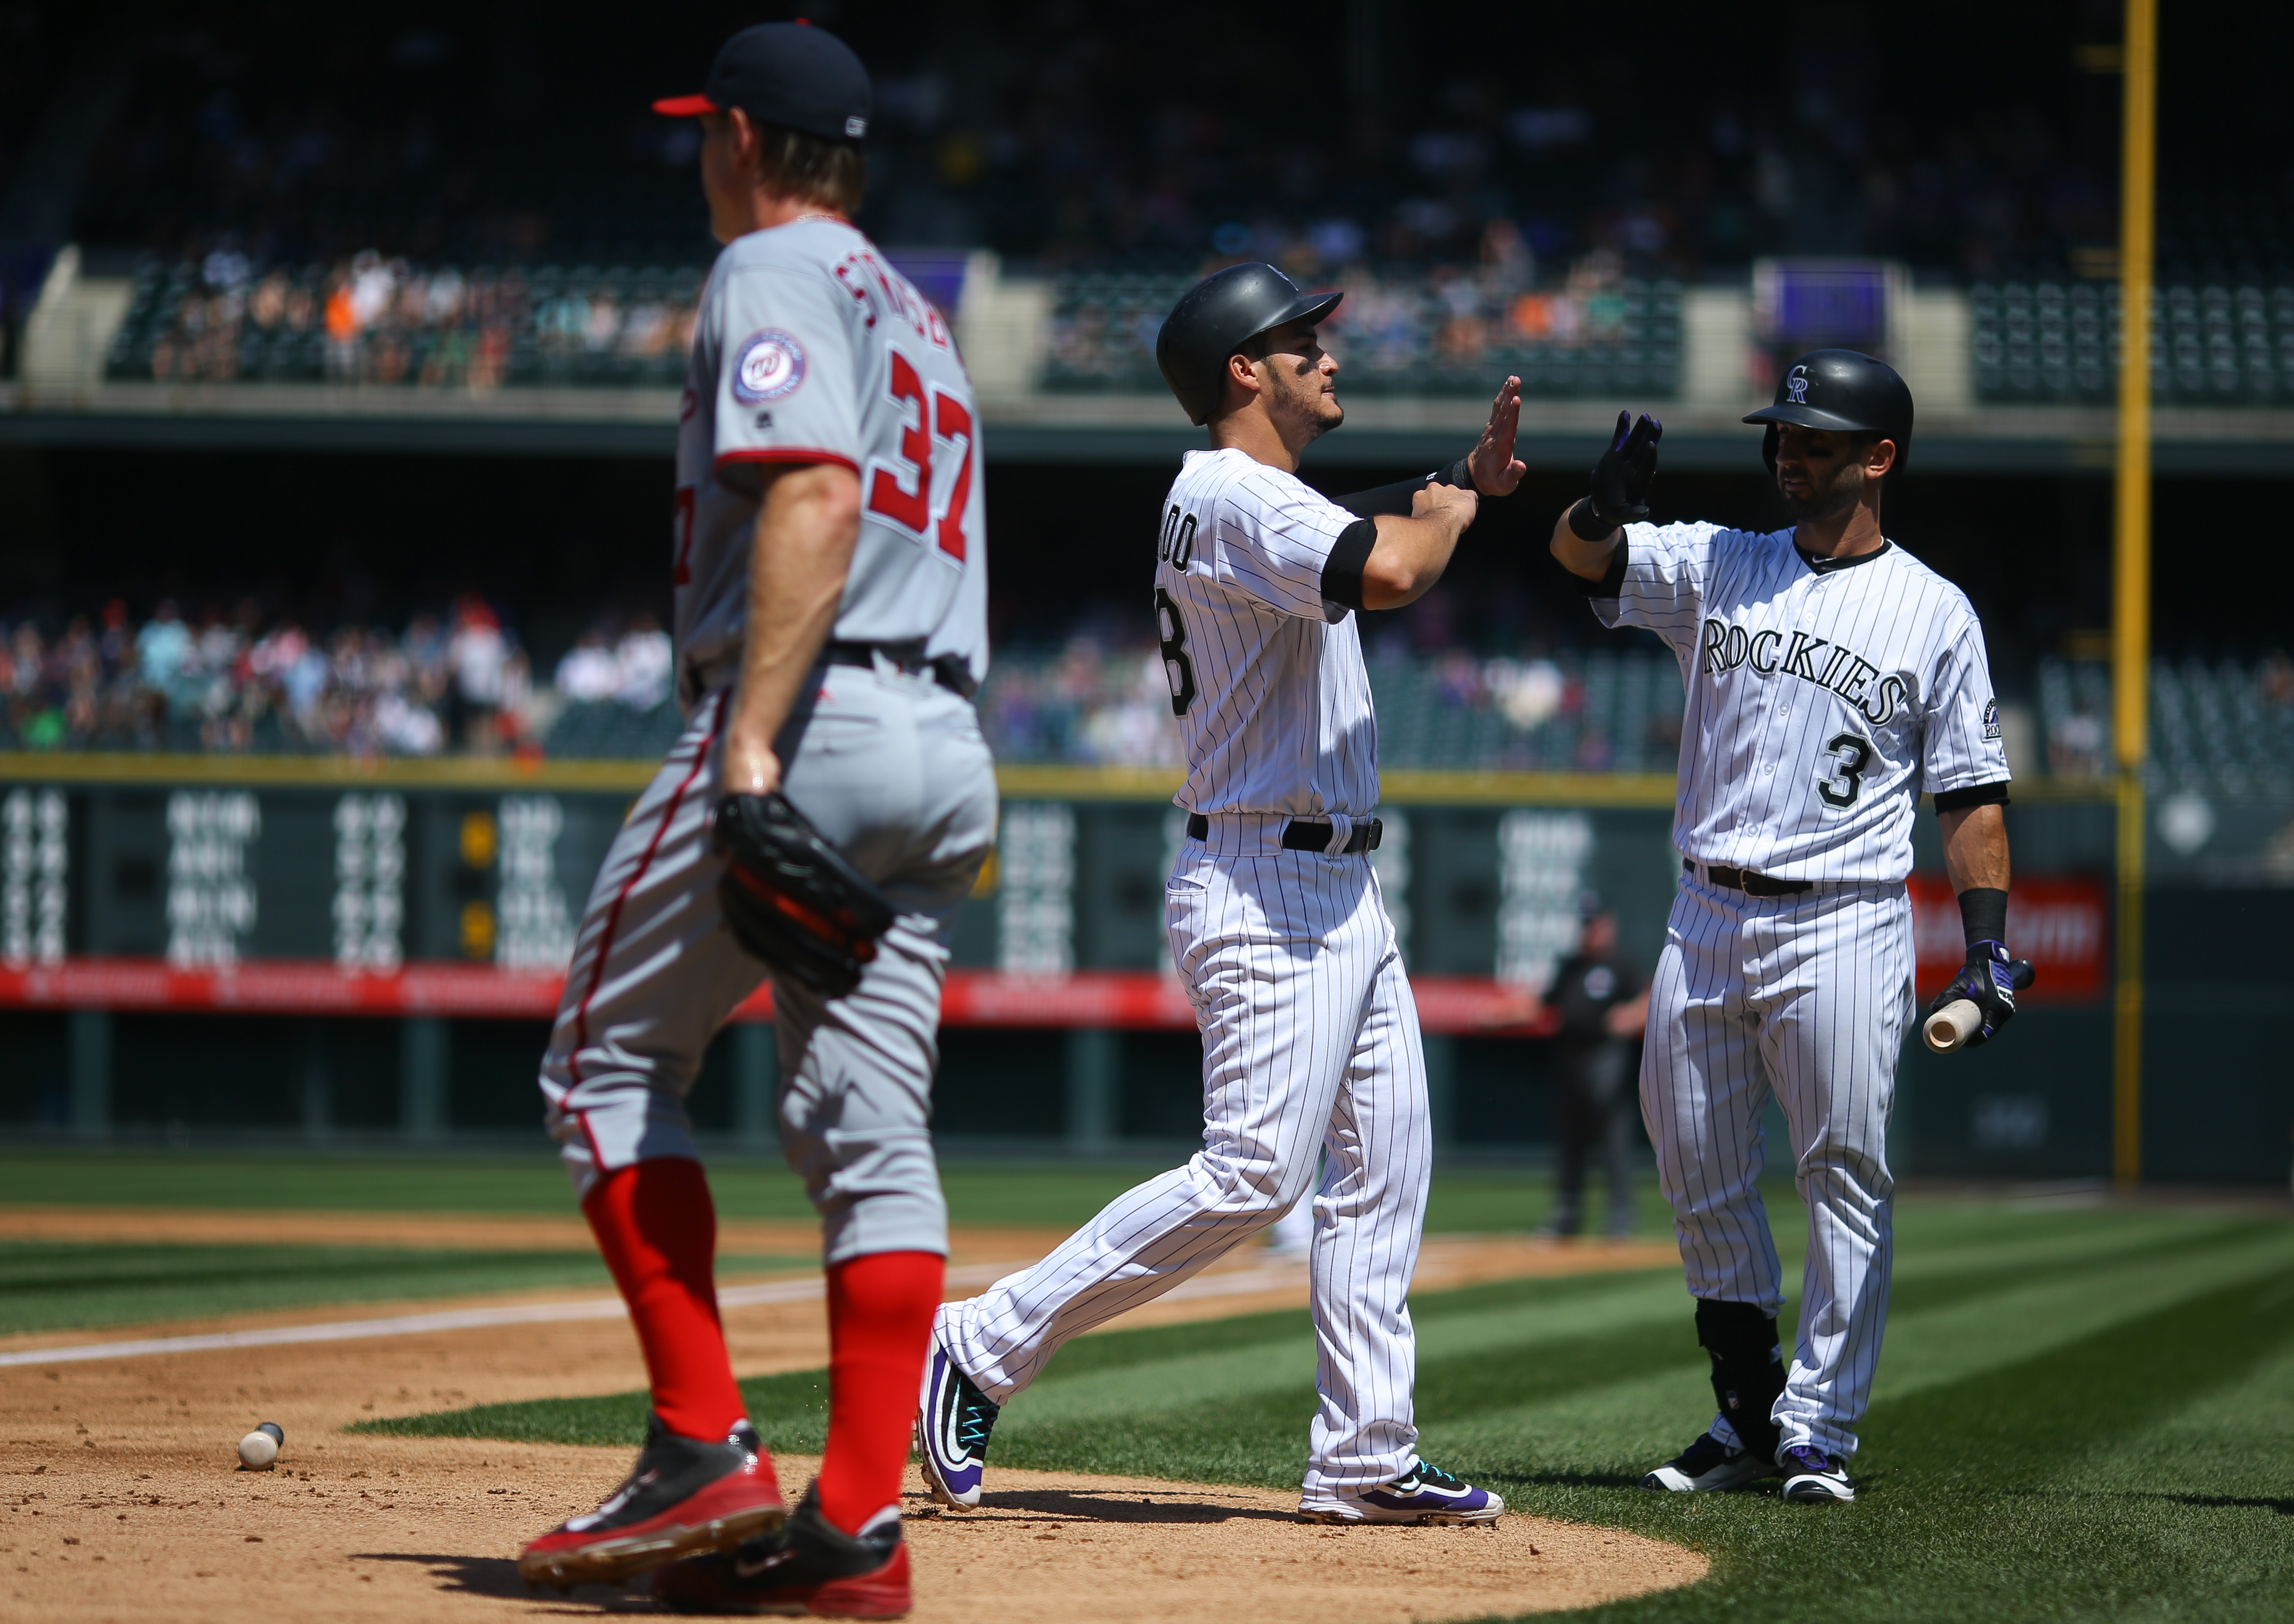 DENVER, CO - AUGUST 17: Nolan Arenado #28 of the Colorado Rockies is congratulated by Daniel Descalso #3 after scoring during the first inning as starting pitcher Stephen Strasburg #37 of the Washington Nationals walks back to the mound at Coors Field on August 17, 2016 in Denver, Colorado. (Photo by Justin Edmonds/Getty Images)